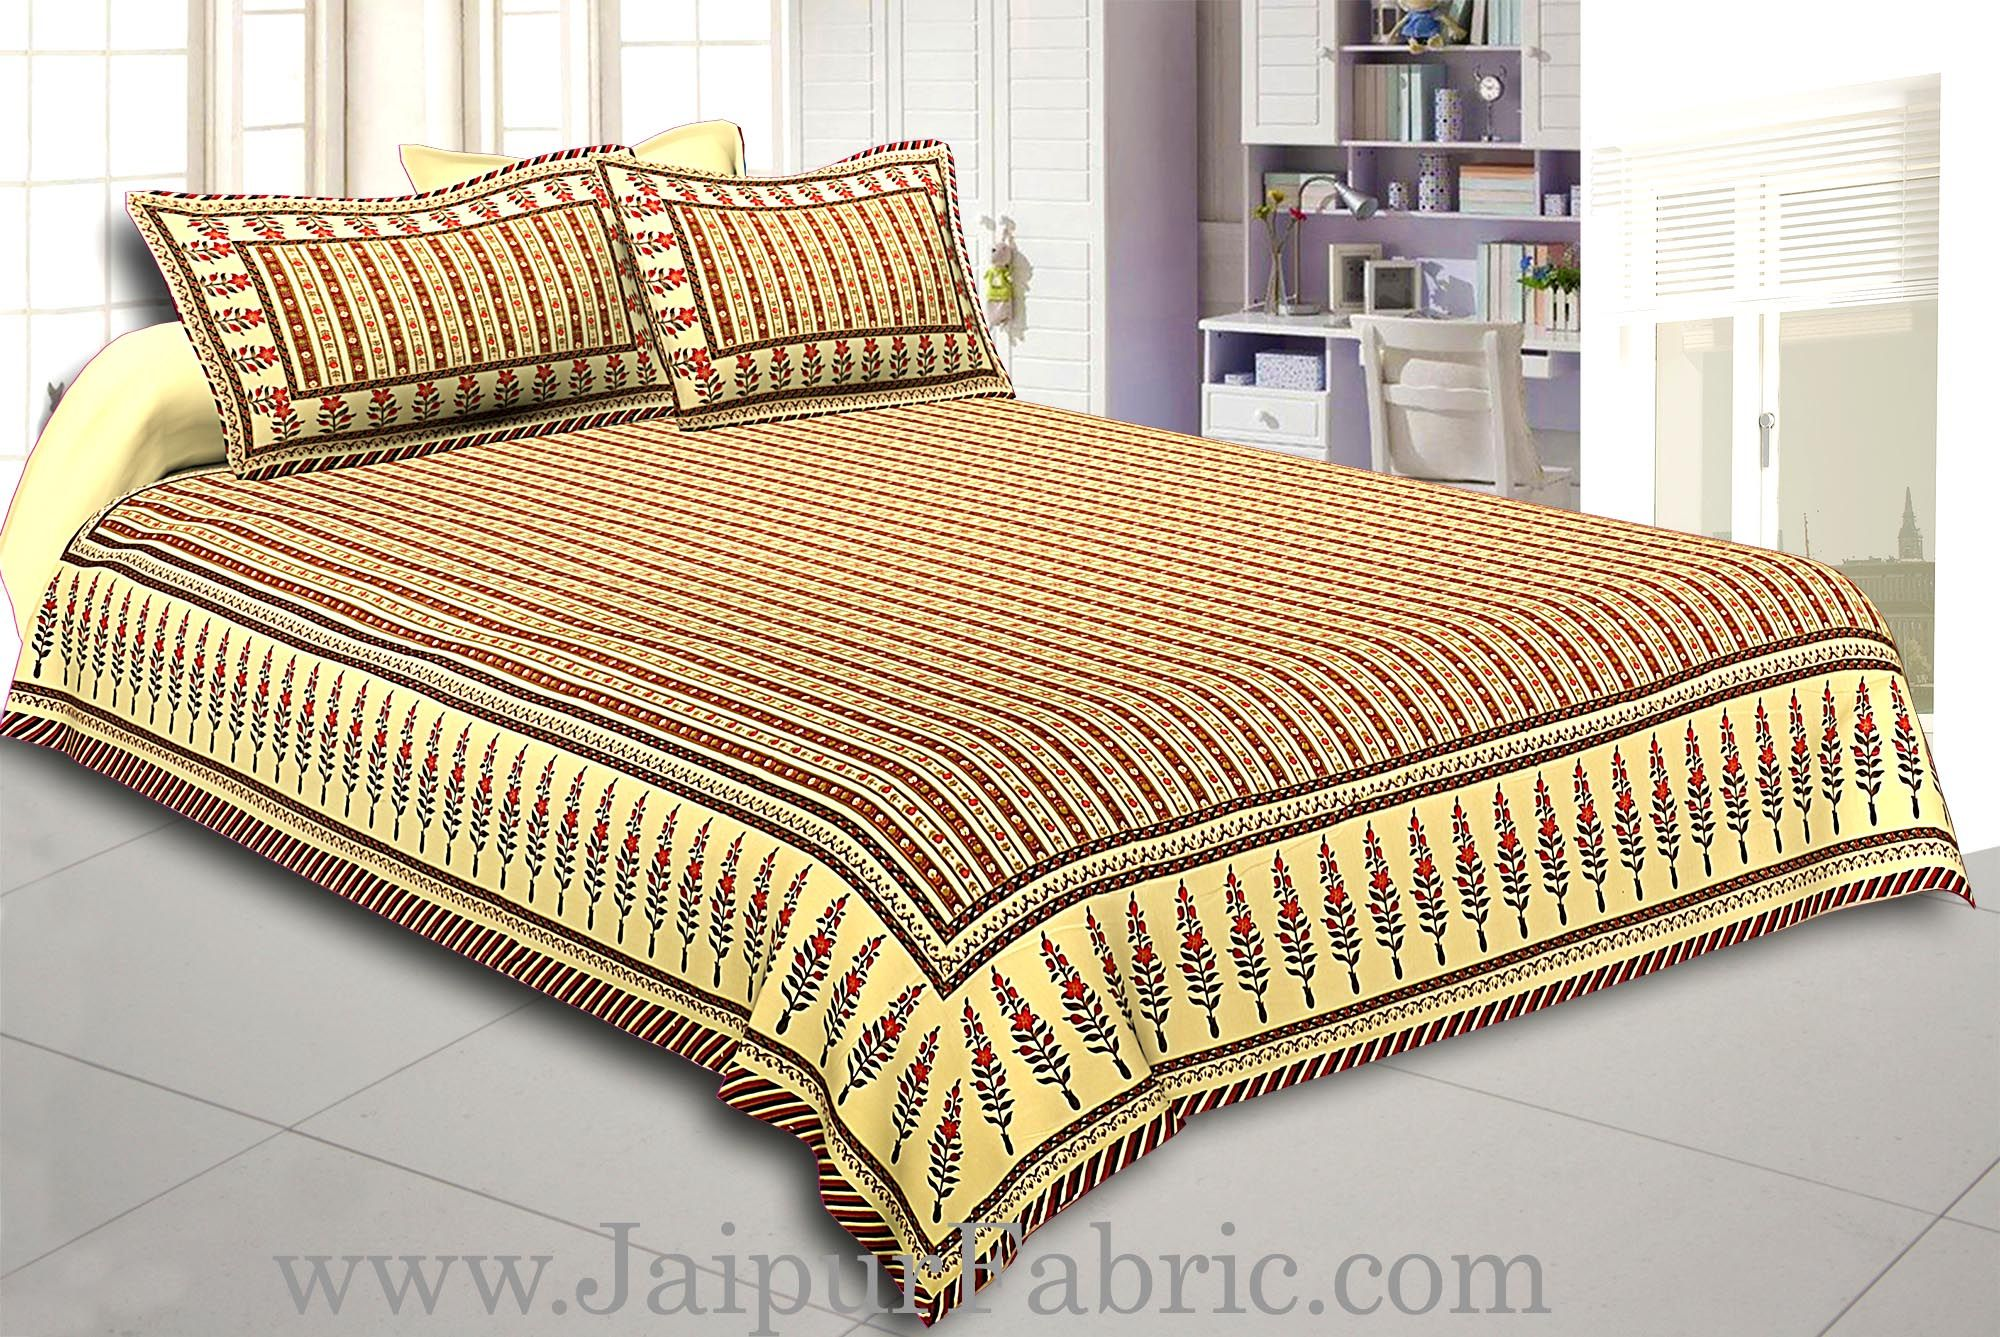 Multi Colored Border Cream Base With Maroon Strip Pattern With Golden Print Super Fine Cotton  Double Bed Sheet